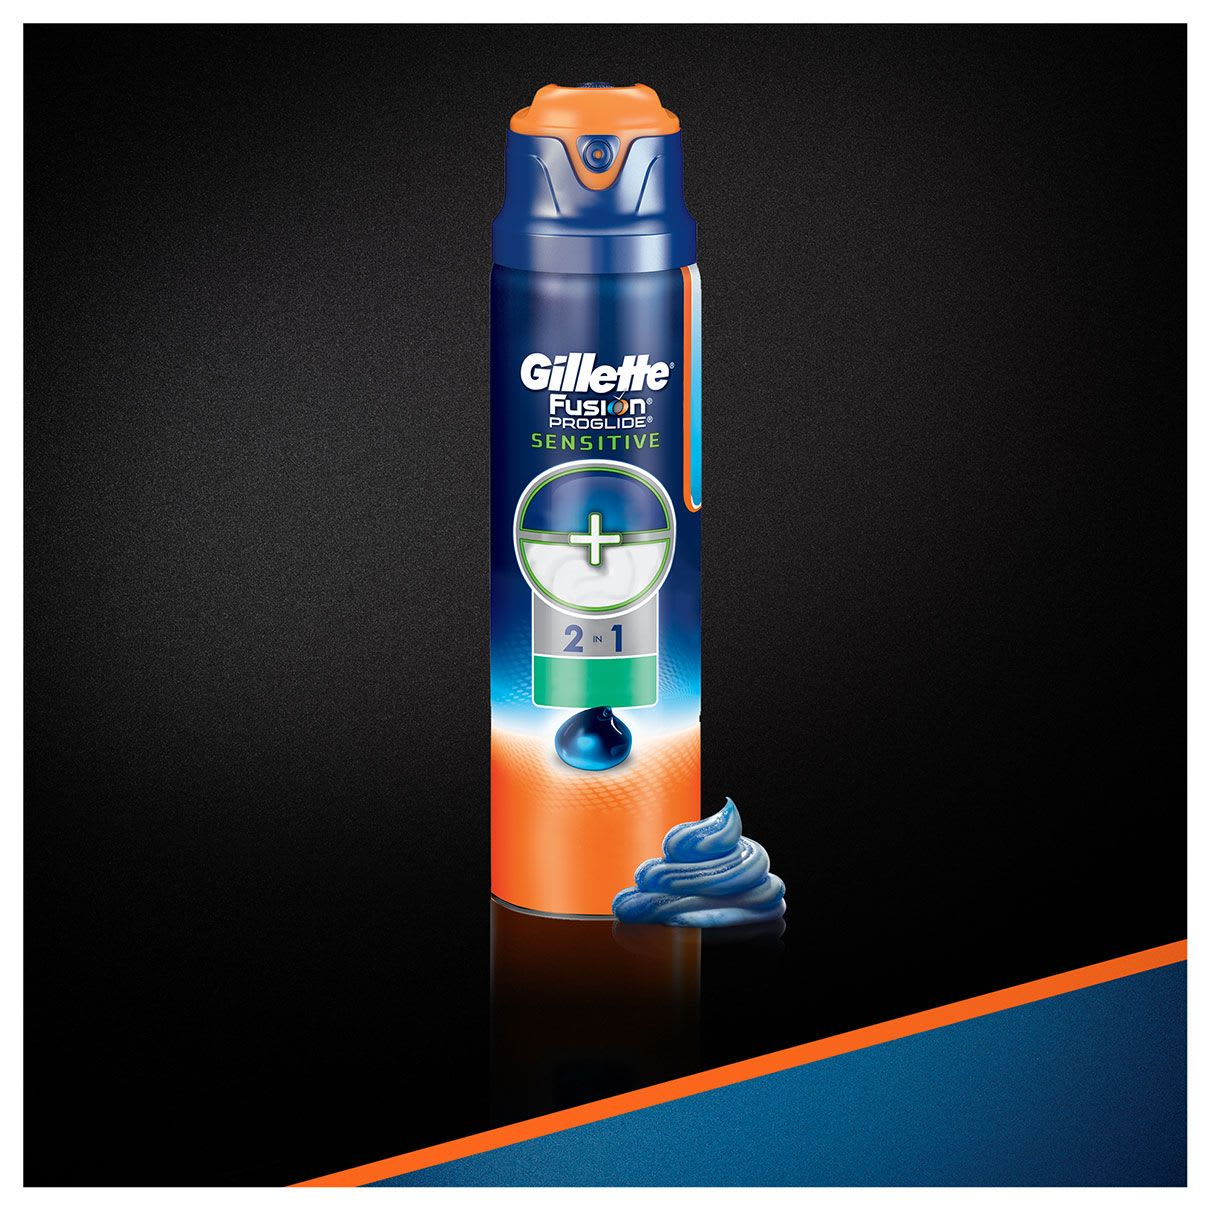 Fusion Proglide 2 W 1 Sensitive Alpine Clean Żel Do Golenia